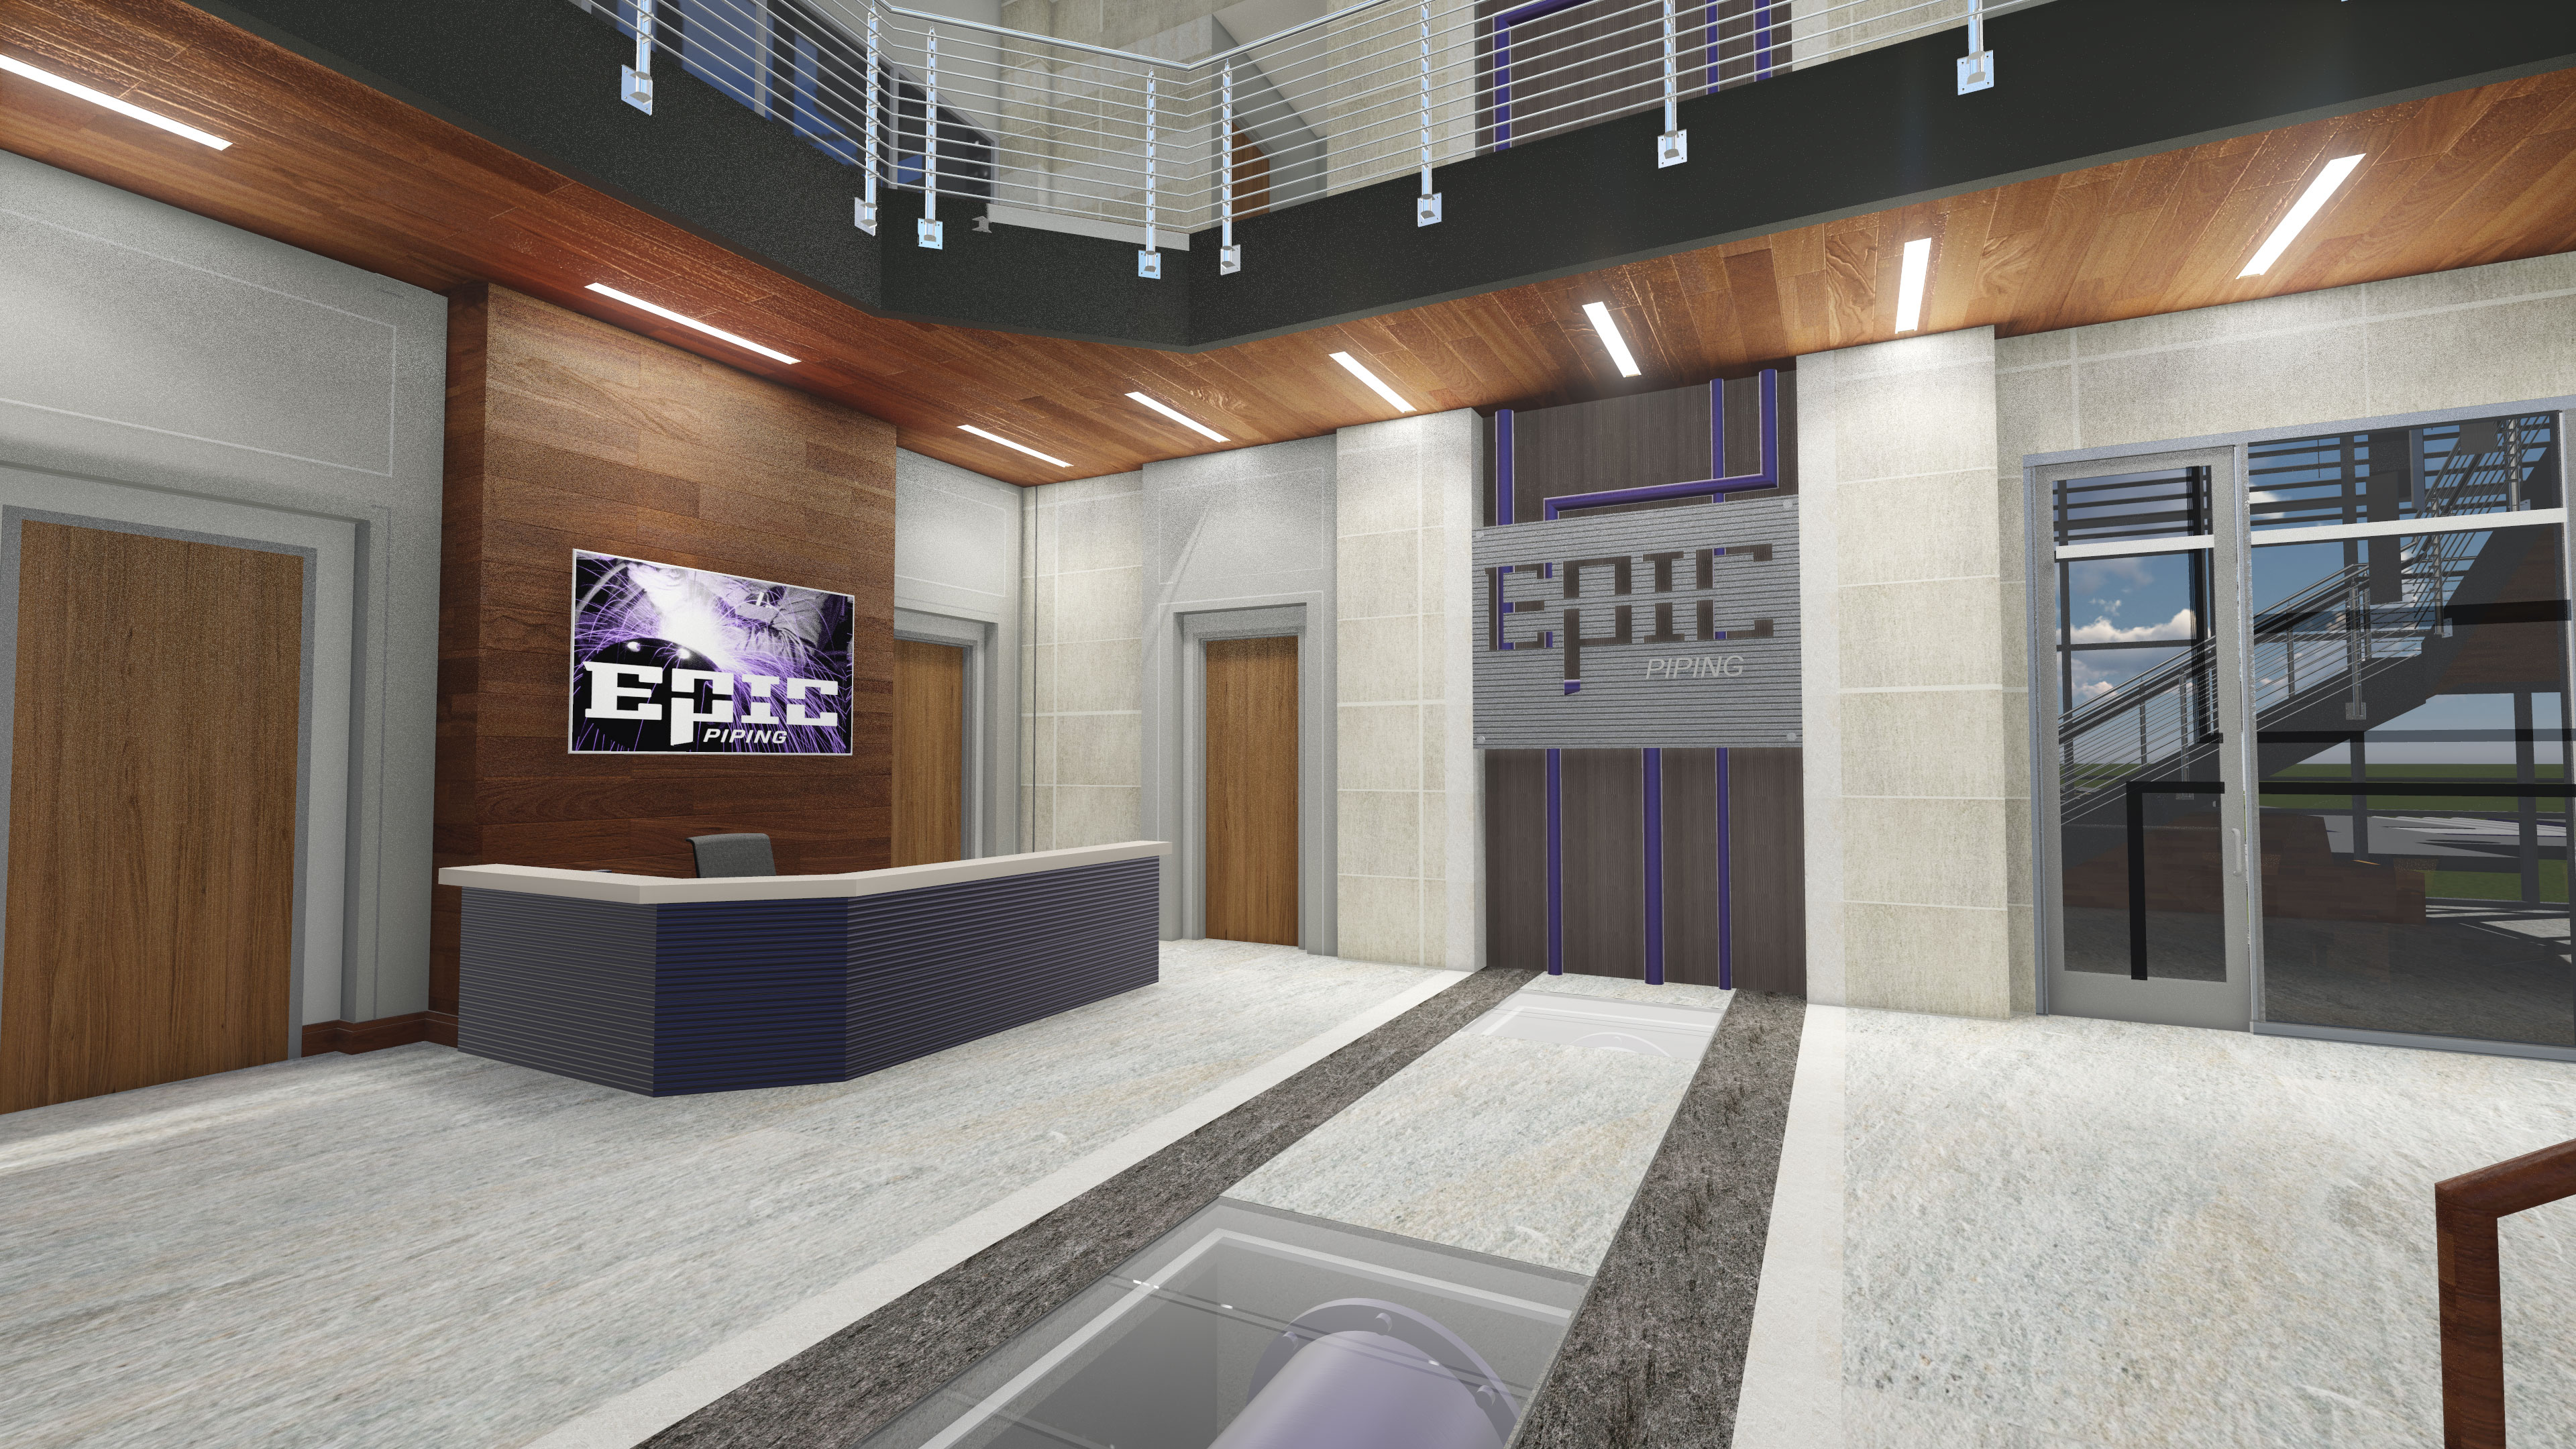 Epic Piping acquires Interline Avenue building for new HQ